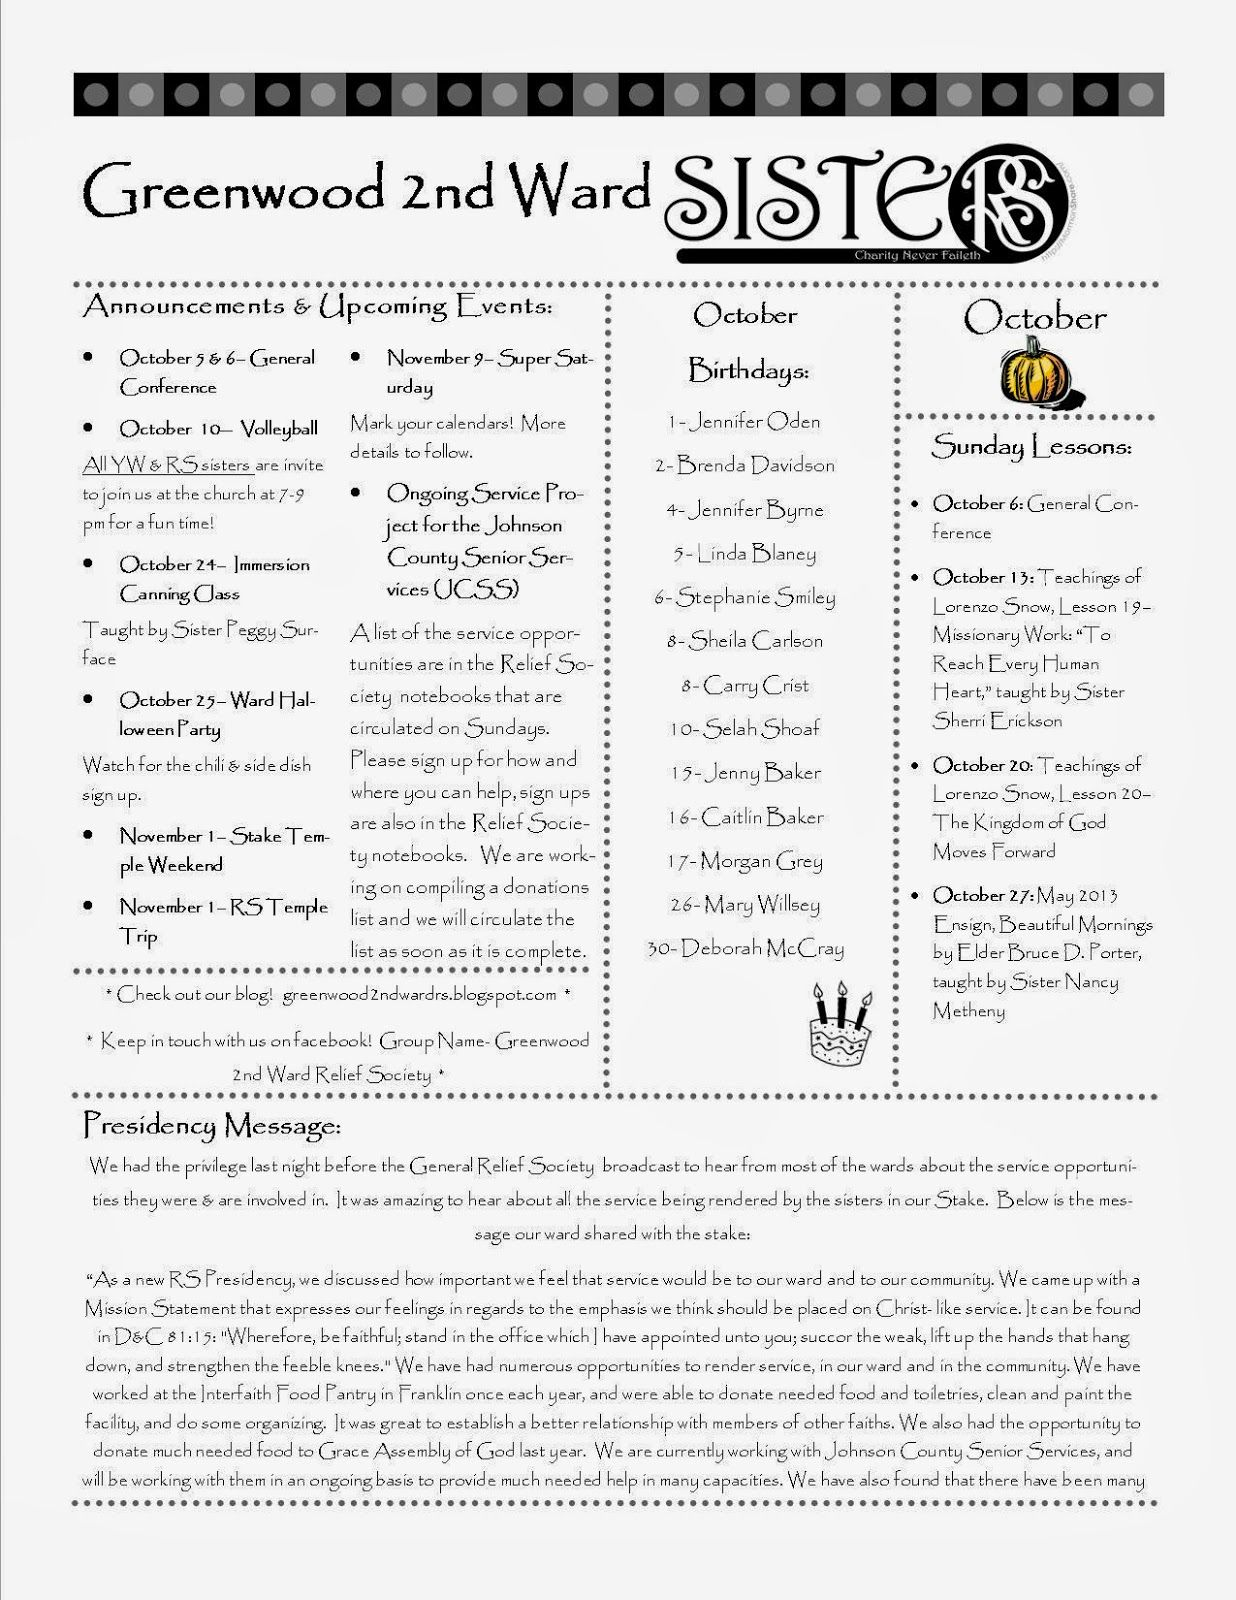 ward relief society newsletter - Google Search | Relief ... on google free flyer templates, google free certificate templates, google free resume templates, google free powerpoint templates, google free business card templates, google free invoice templates,